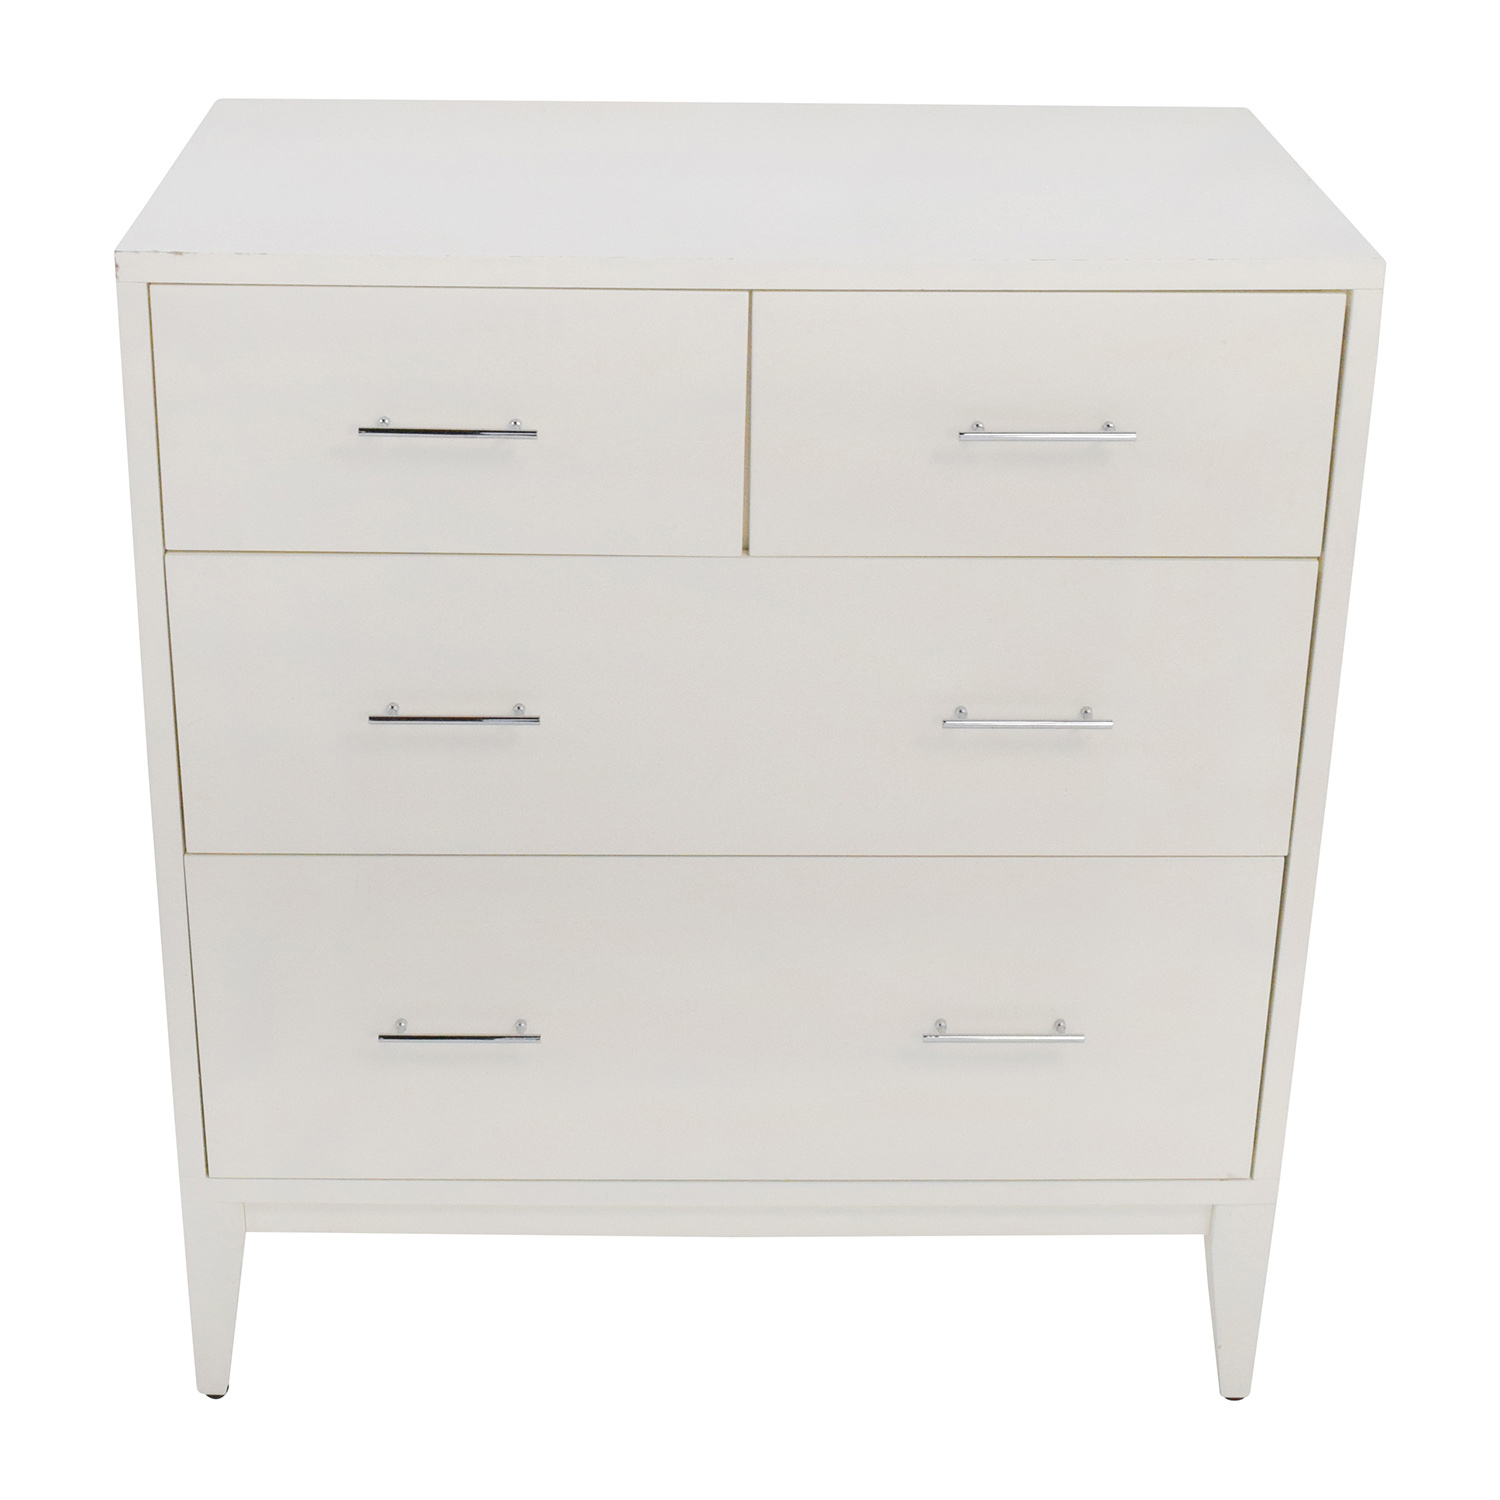 West Elm West Elm Narrow Leg 4-Drawer White Dresser white